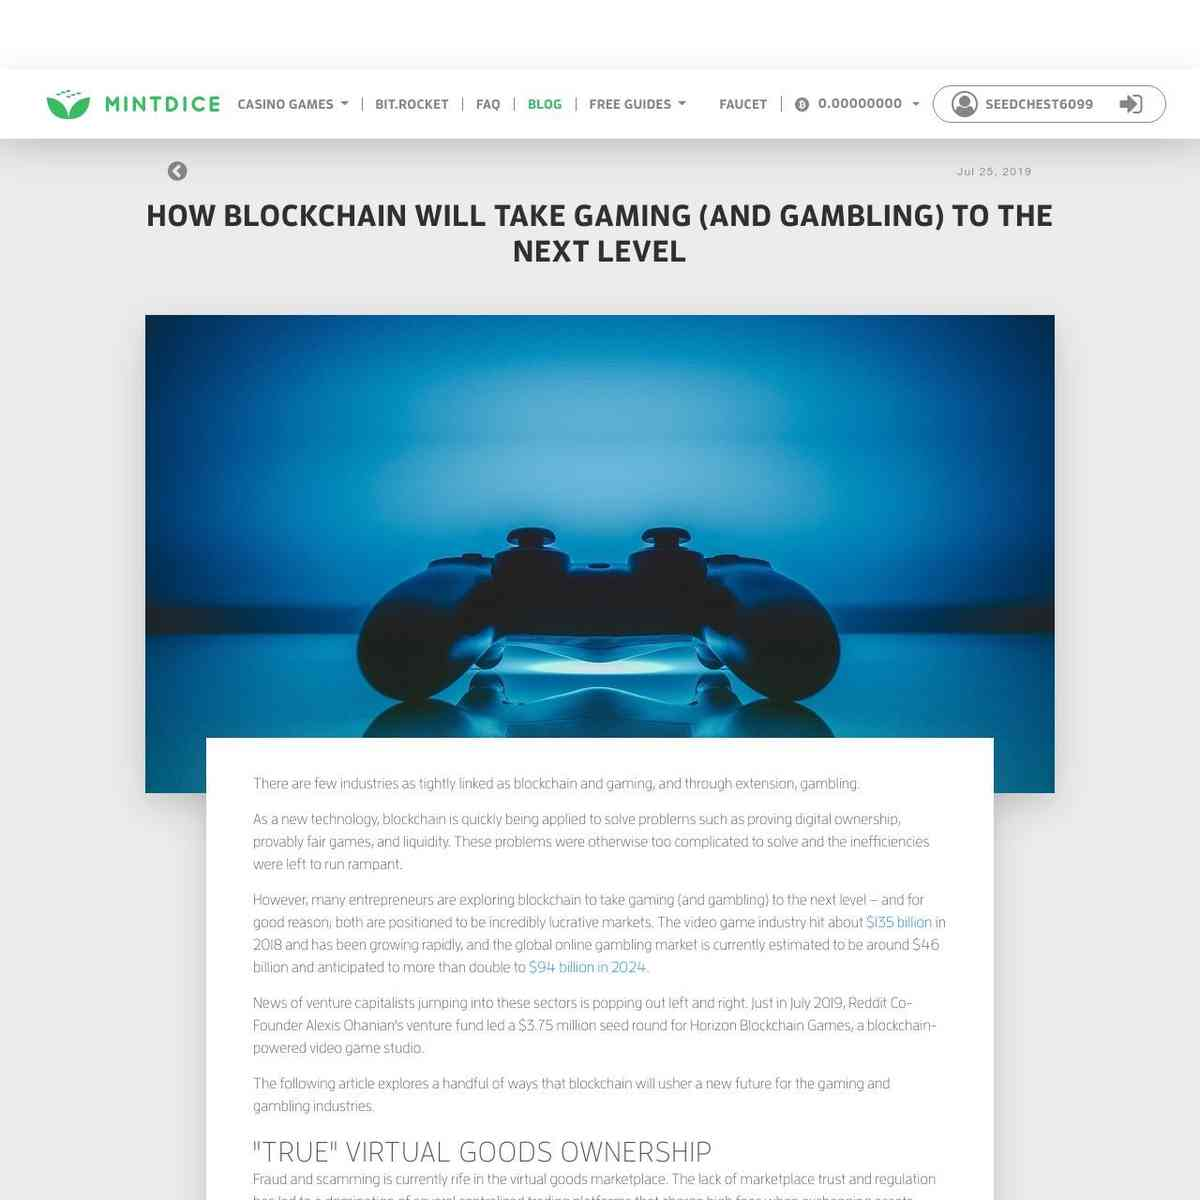 How Blockchain Will Take Gaming (and Gambling) to the Next Level